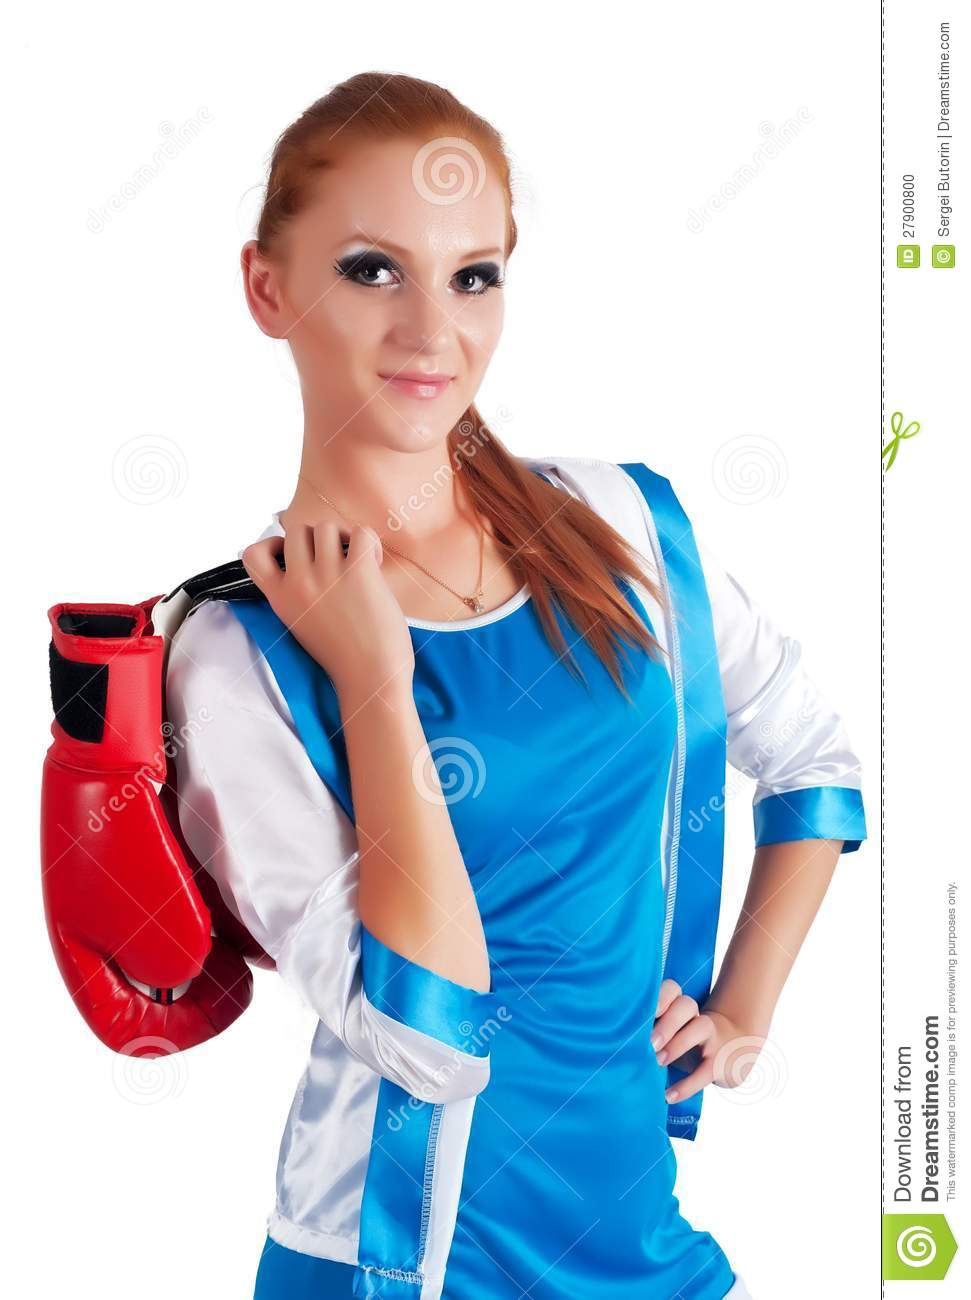 jolie fille avec des gants de boxe photo stock image. Black Bedroom Furniture Sets. Home Design Ideas